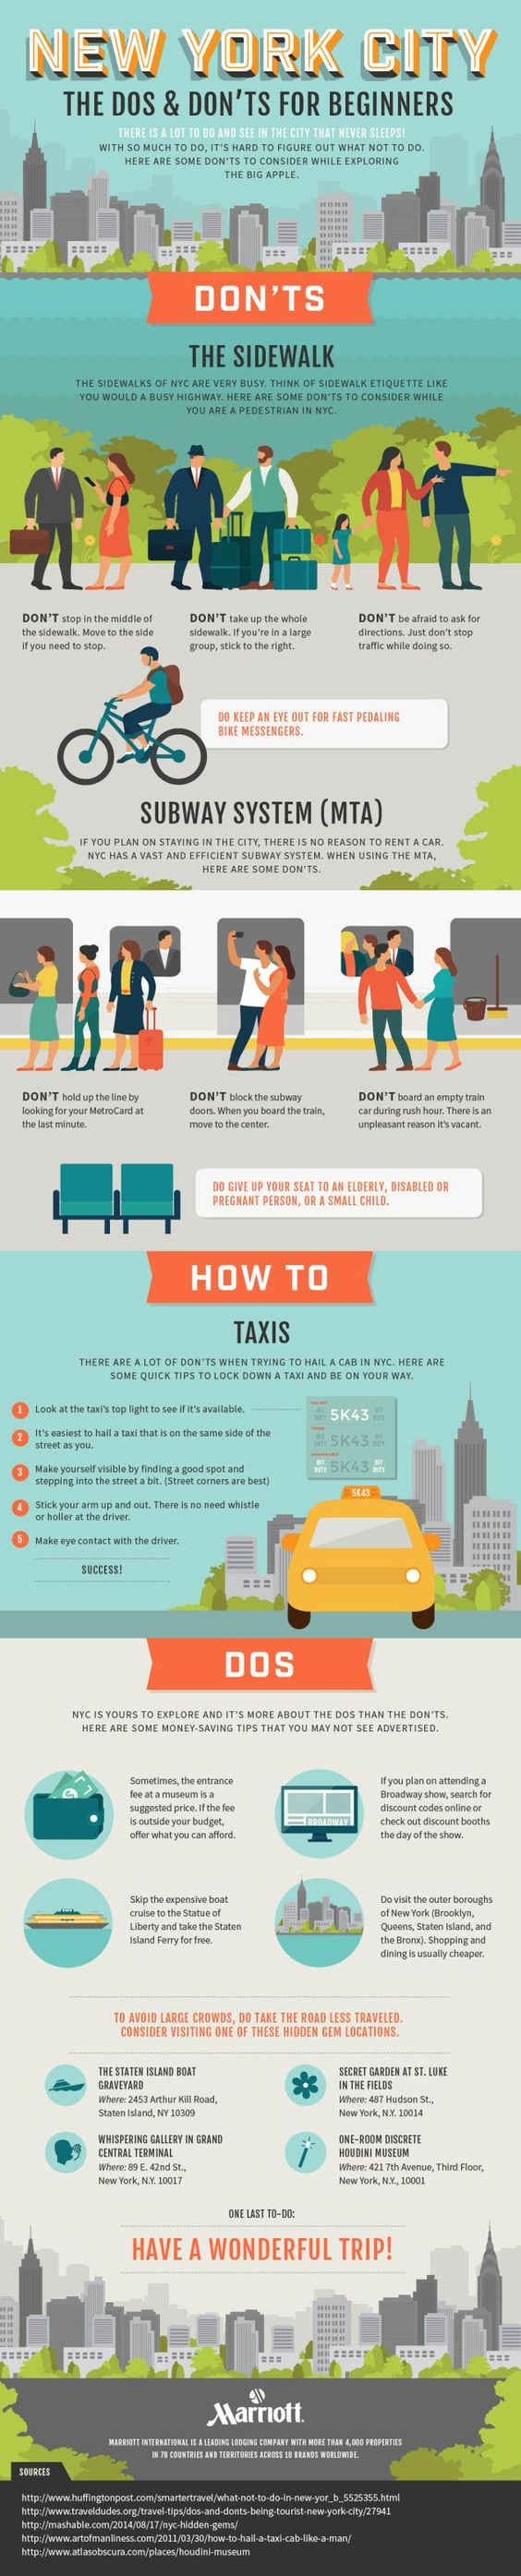 New York City for Beginners - Dos and Don'ts and Travel Tips .